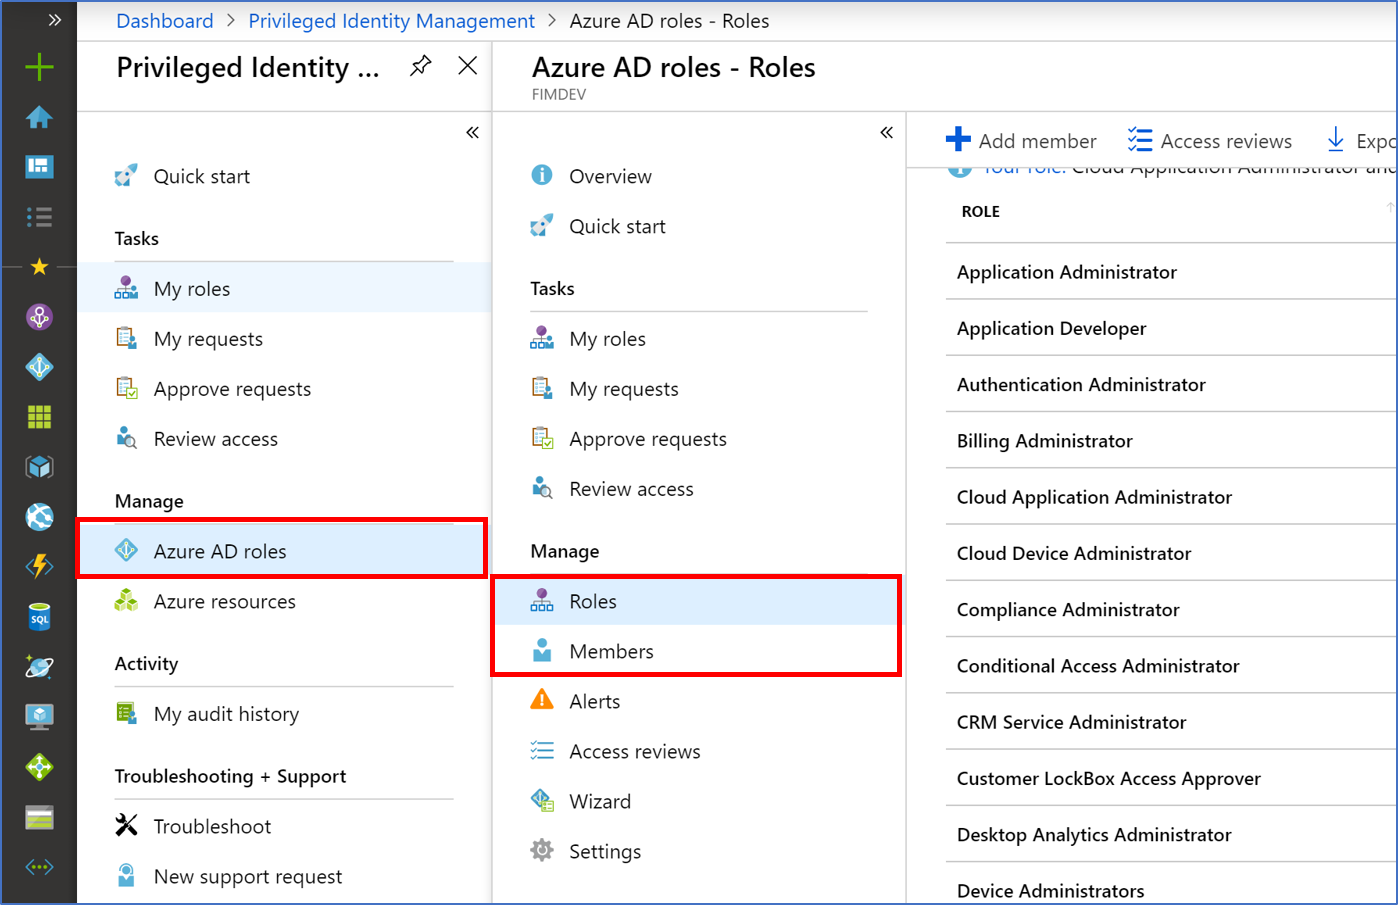 Assign Azure AD roles in PIM - Azure Active Directory